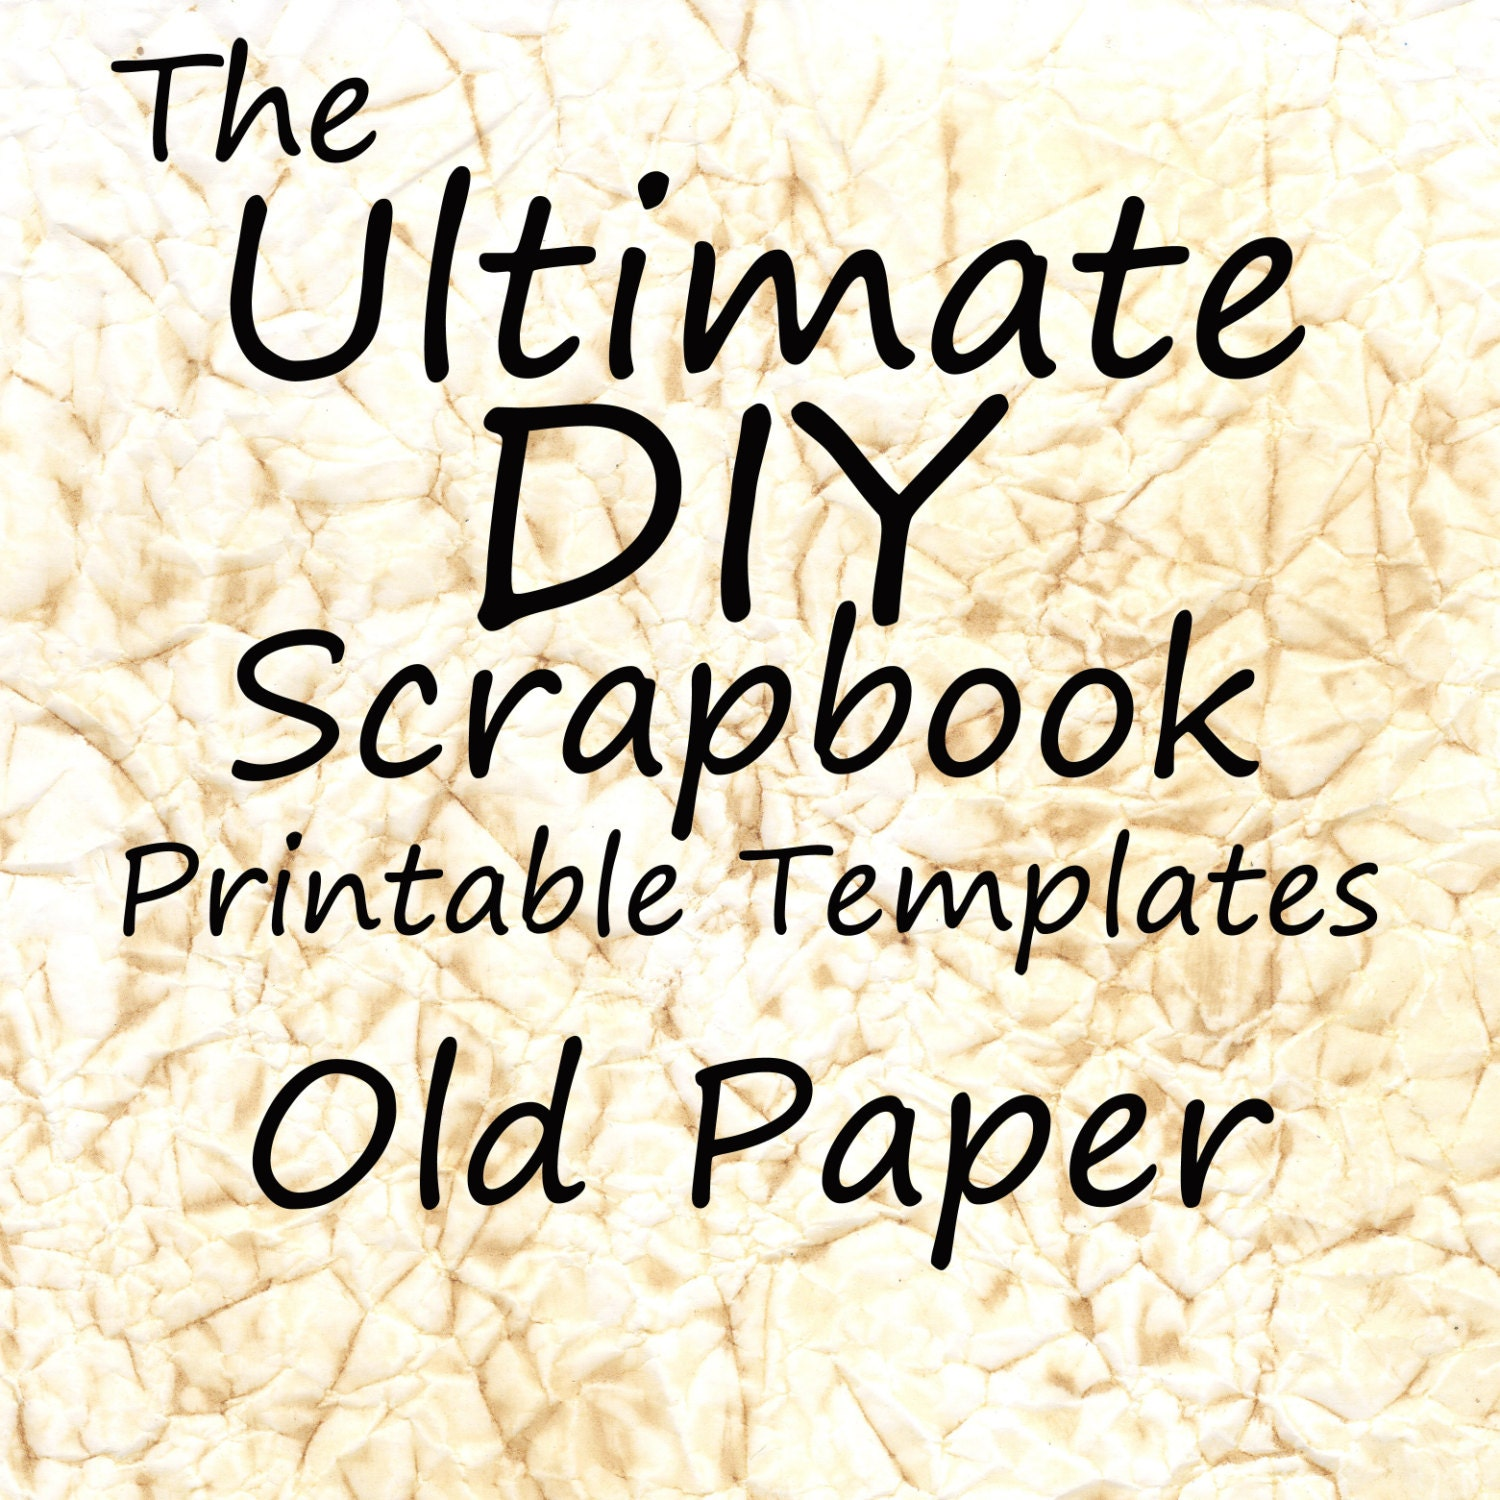 The Ultimate DIY Scrapbook Printable Templates Old Paper ...